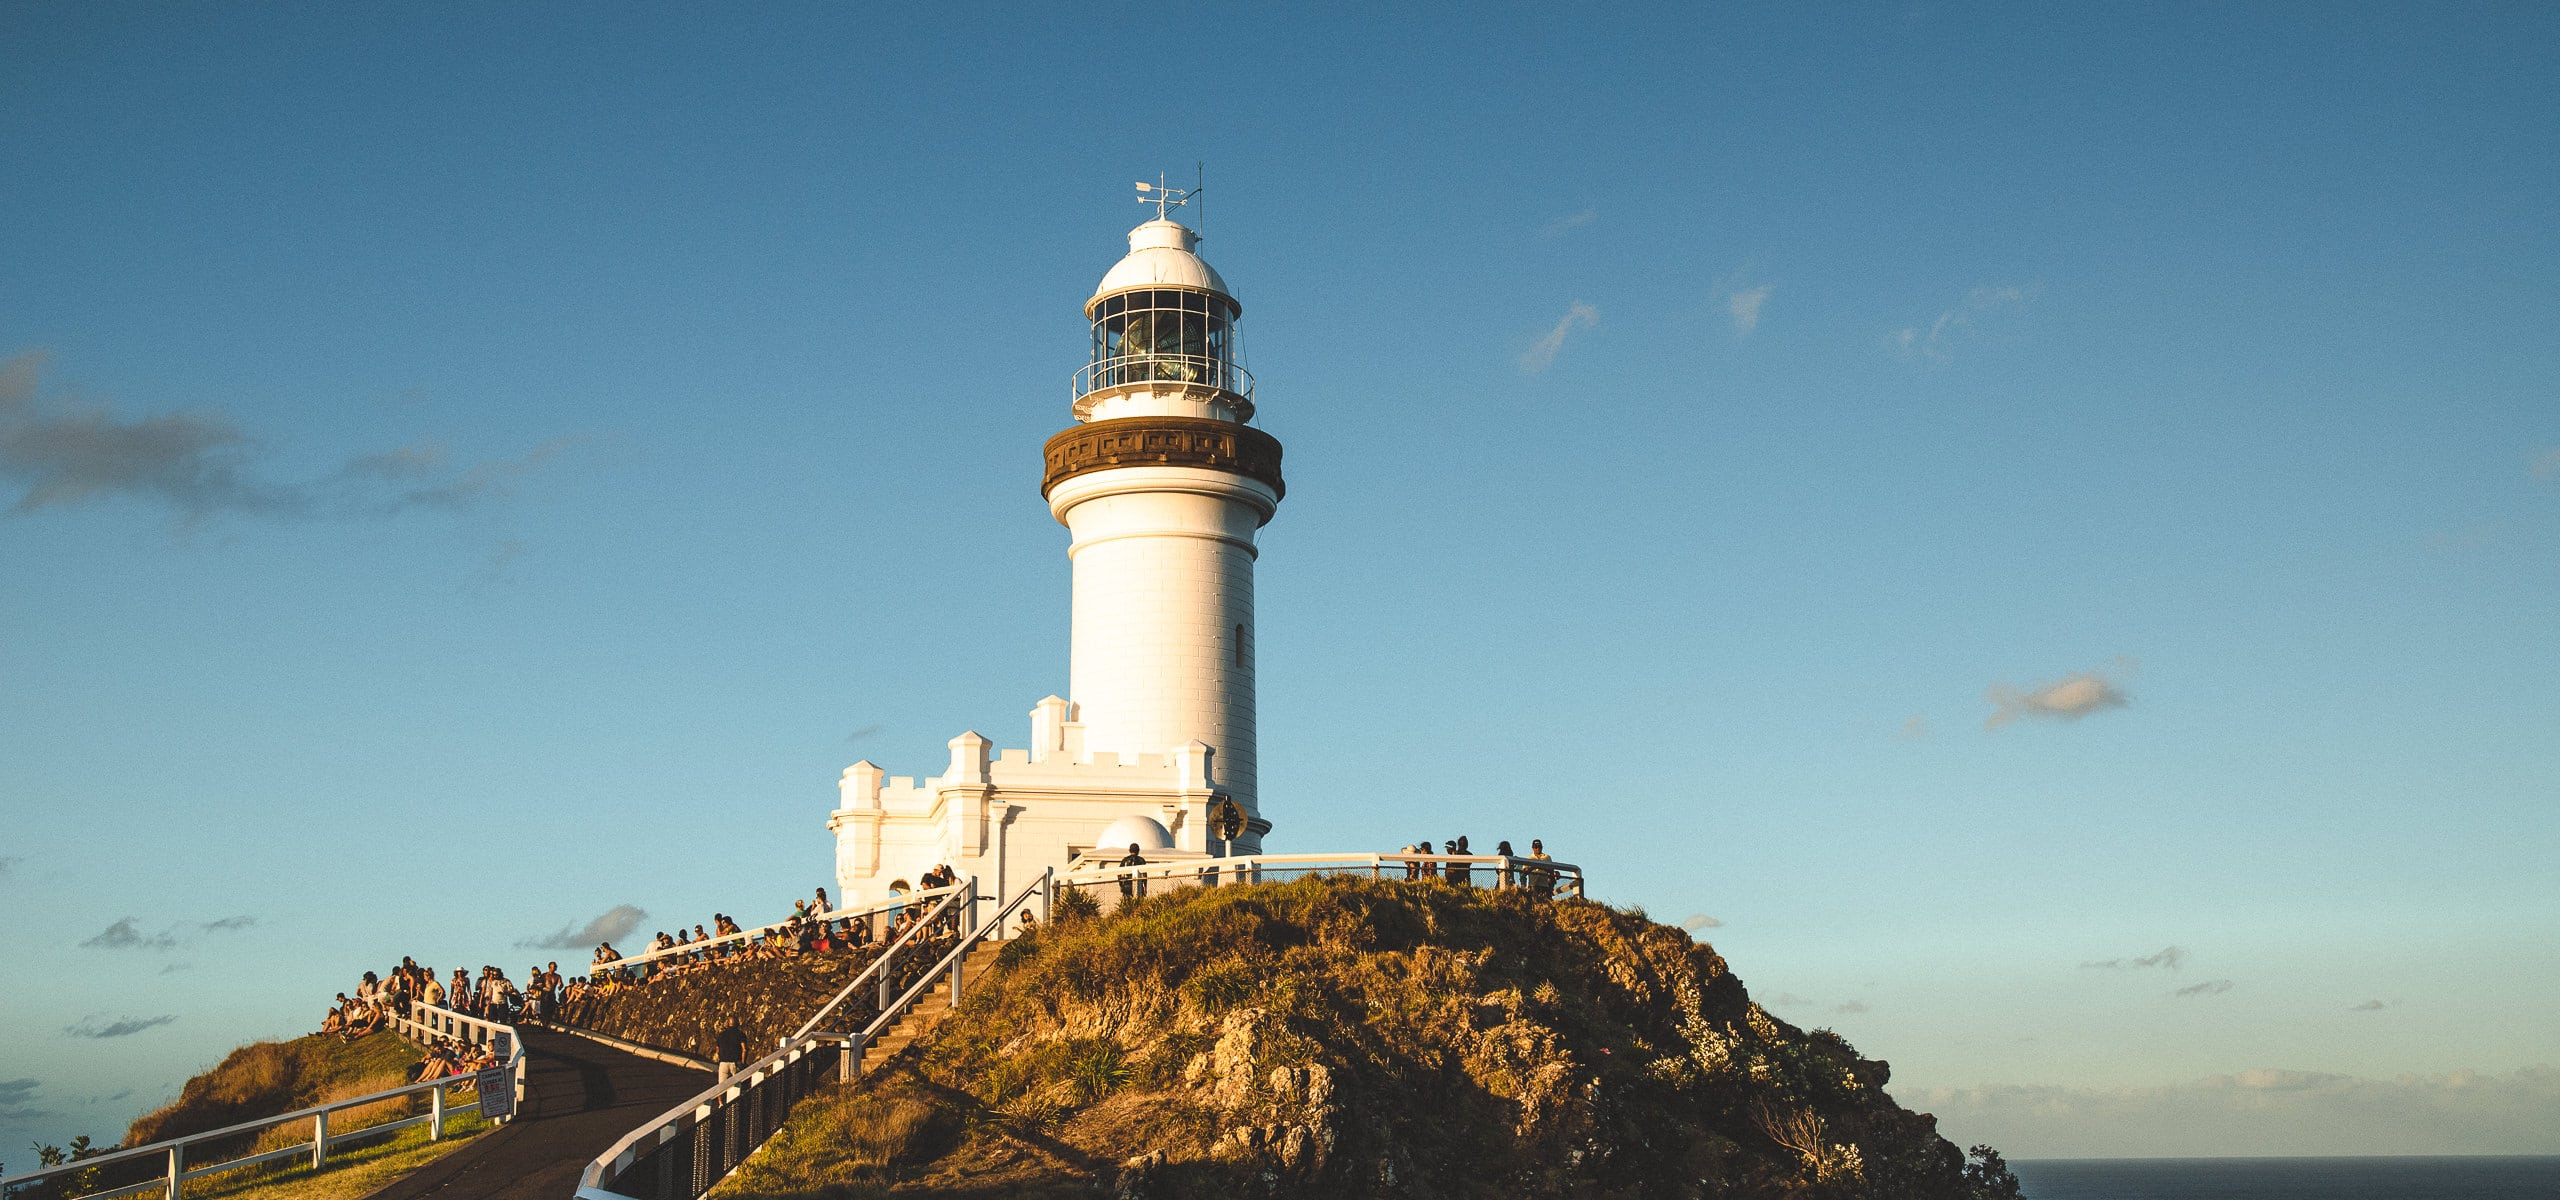 The Ultimate Byron Bay Travel Guide